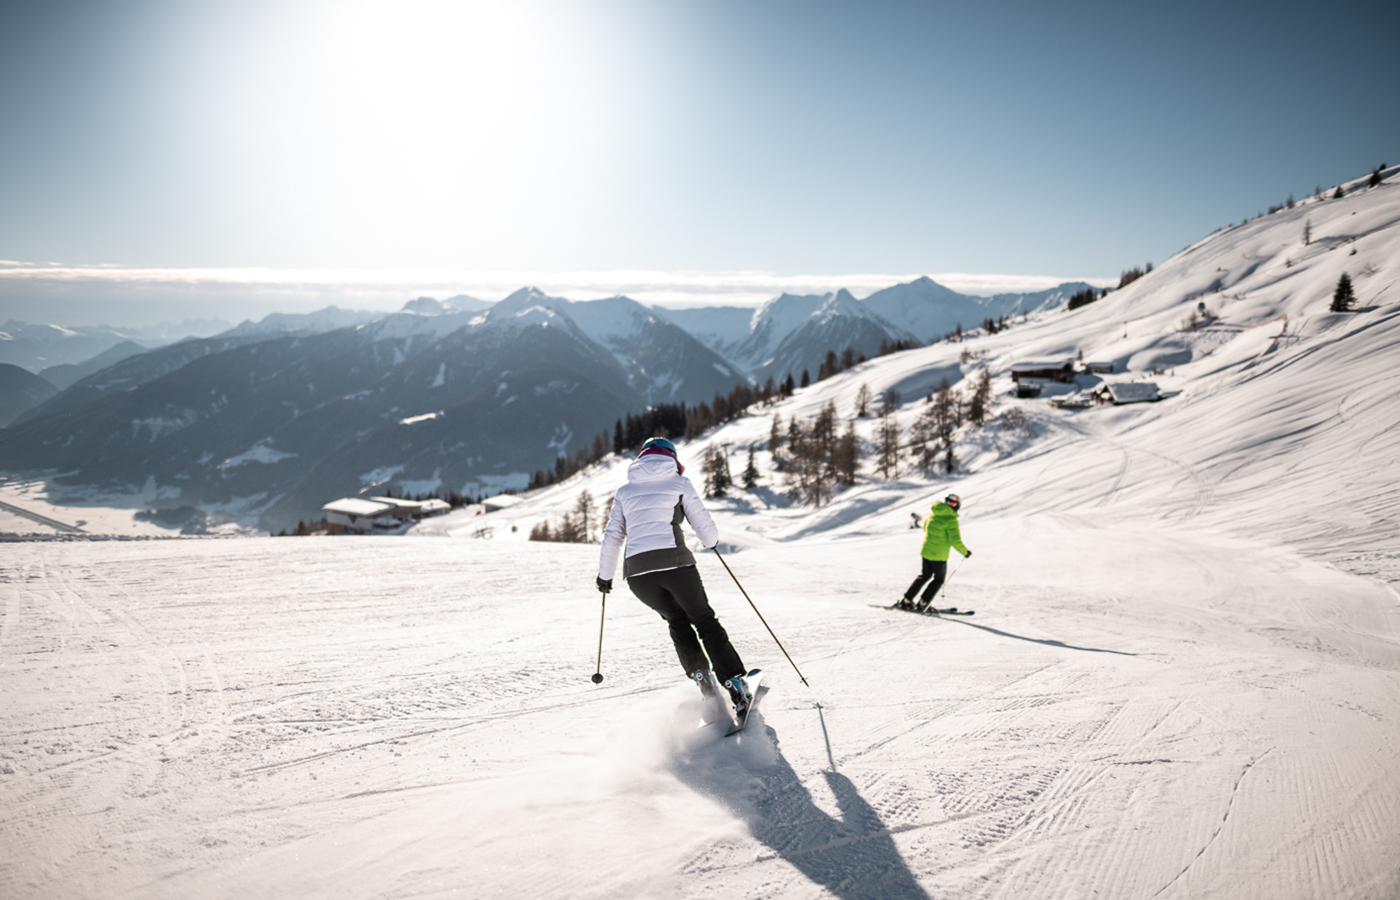 Laughing couple on sun loungers on snowy mountains